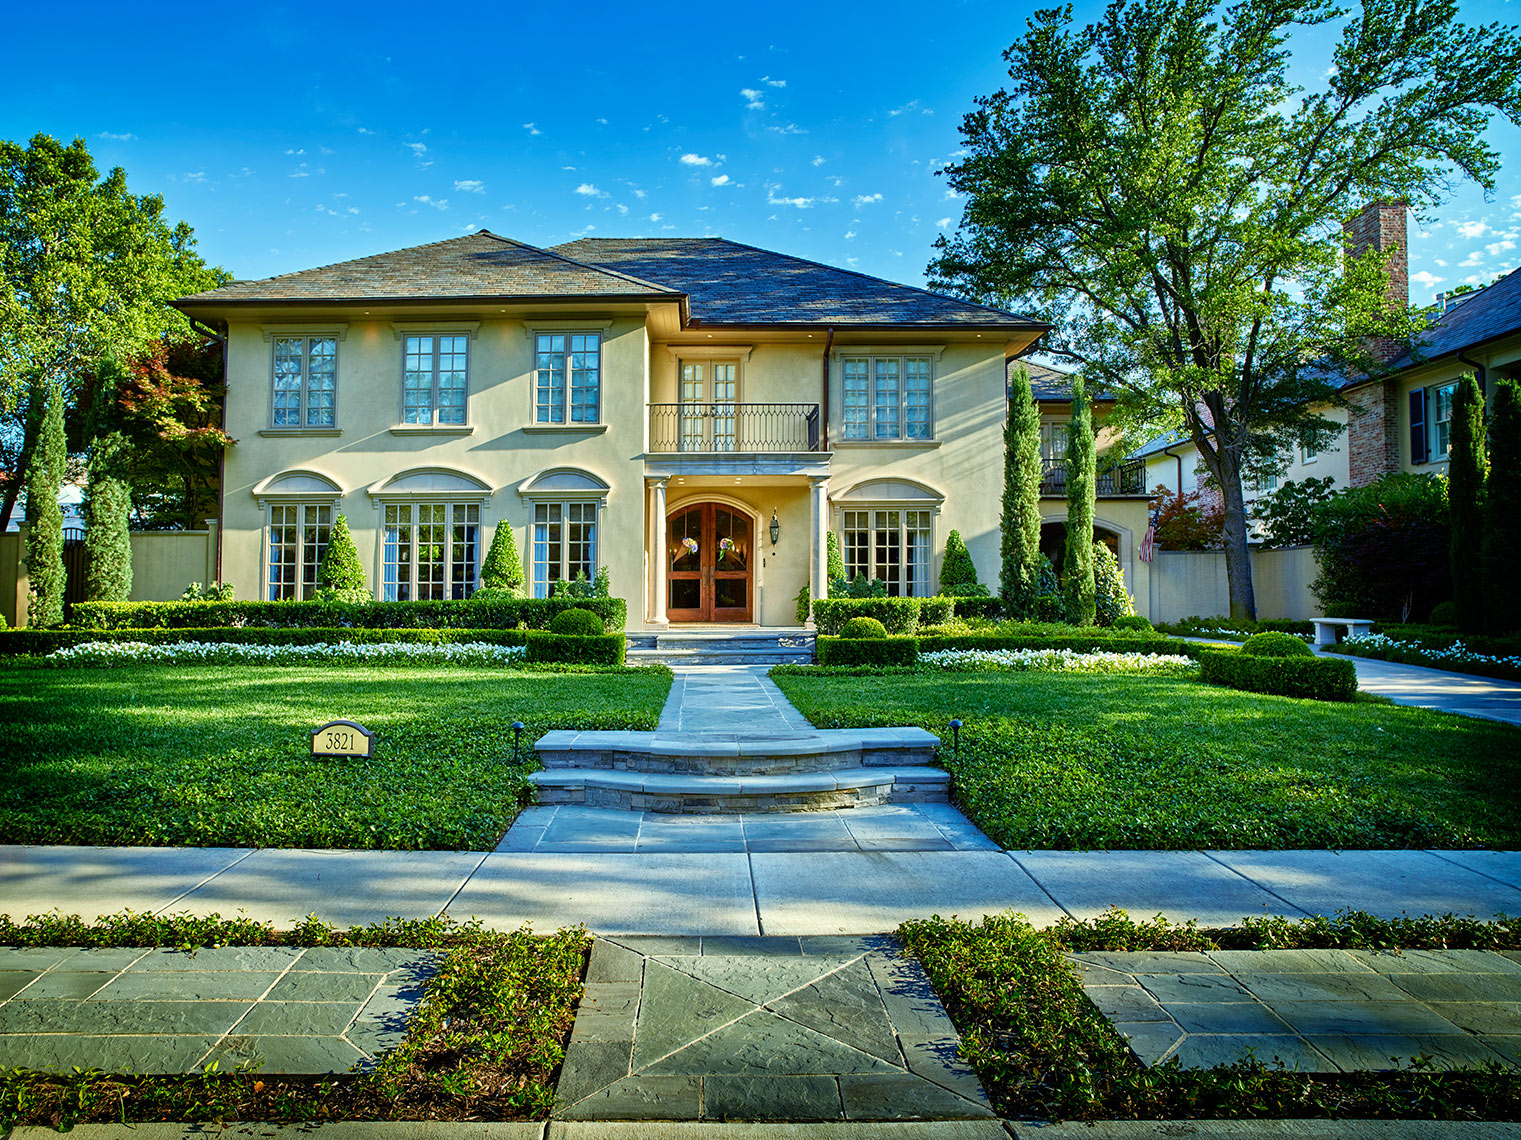 Dallas architecutre and fine homes in Park Cities